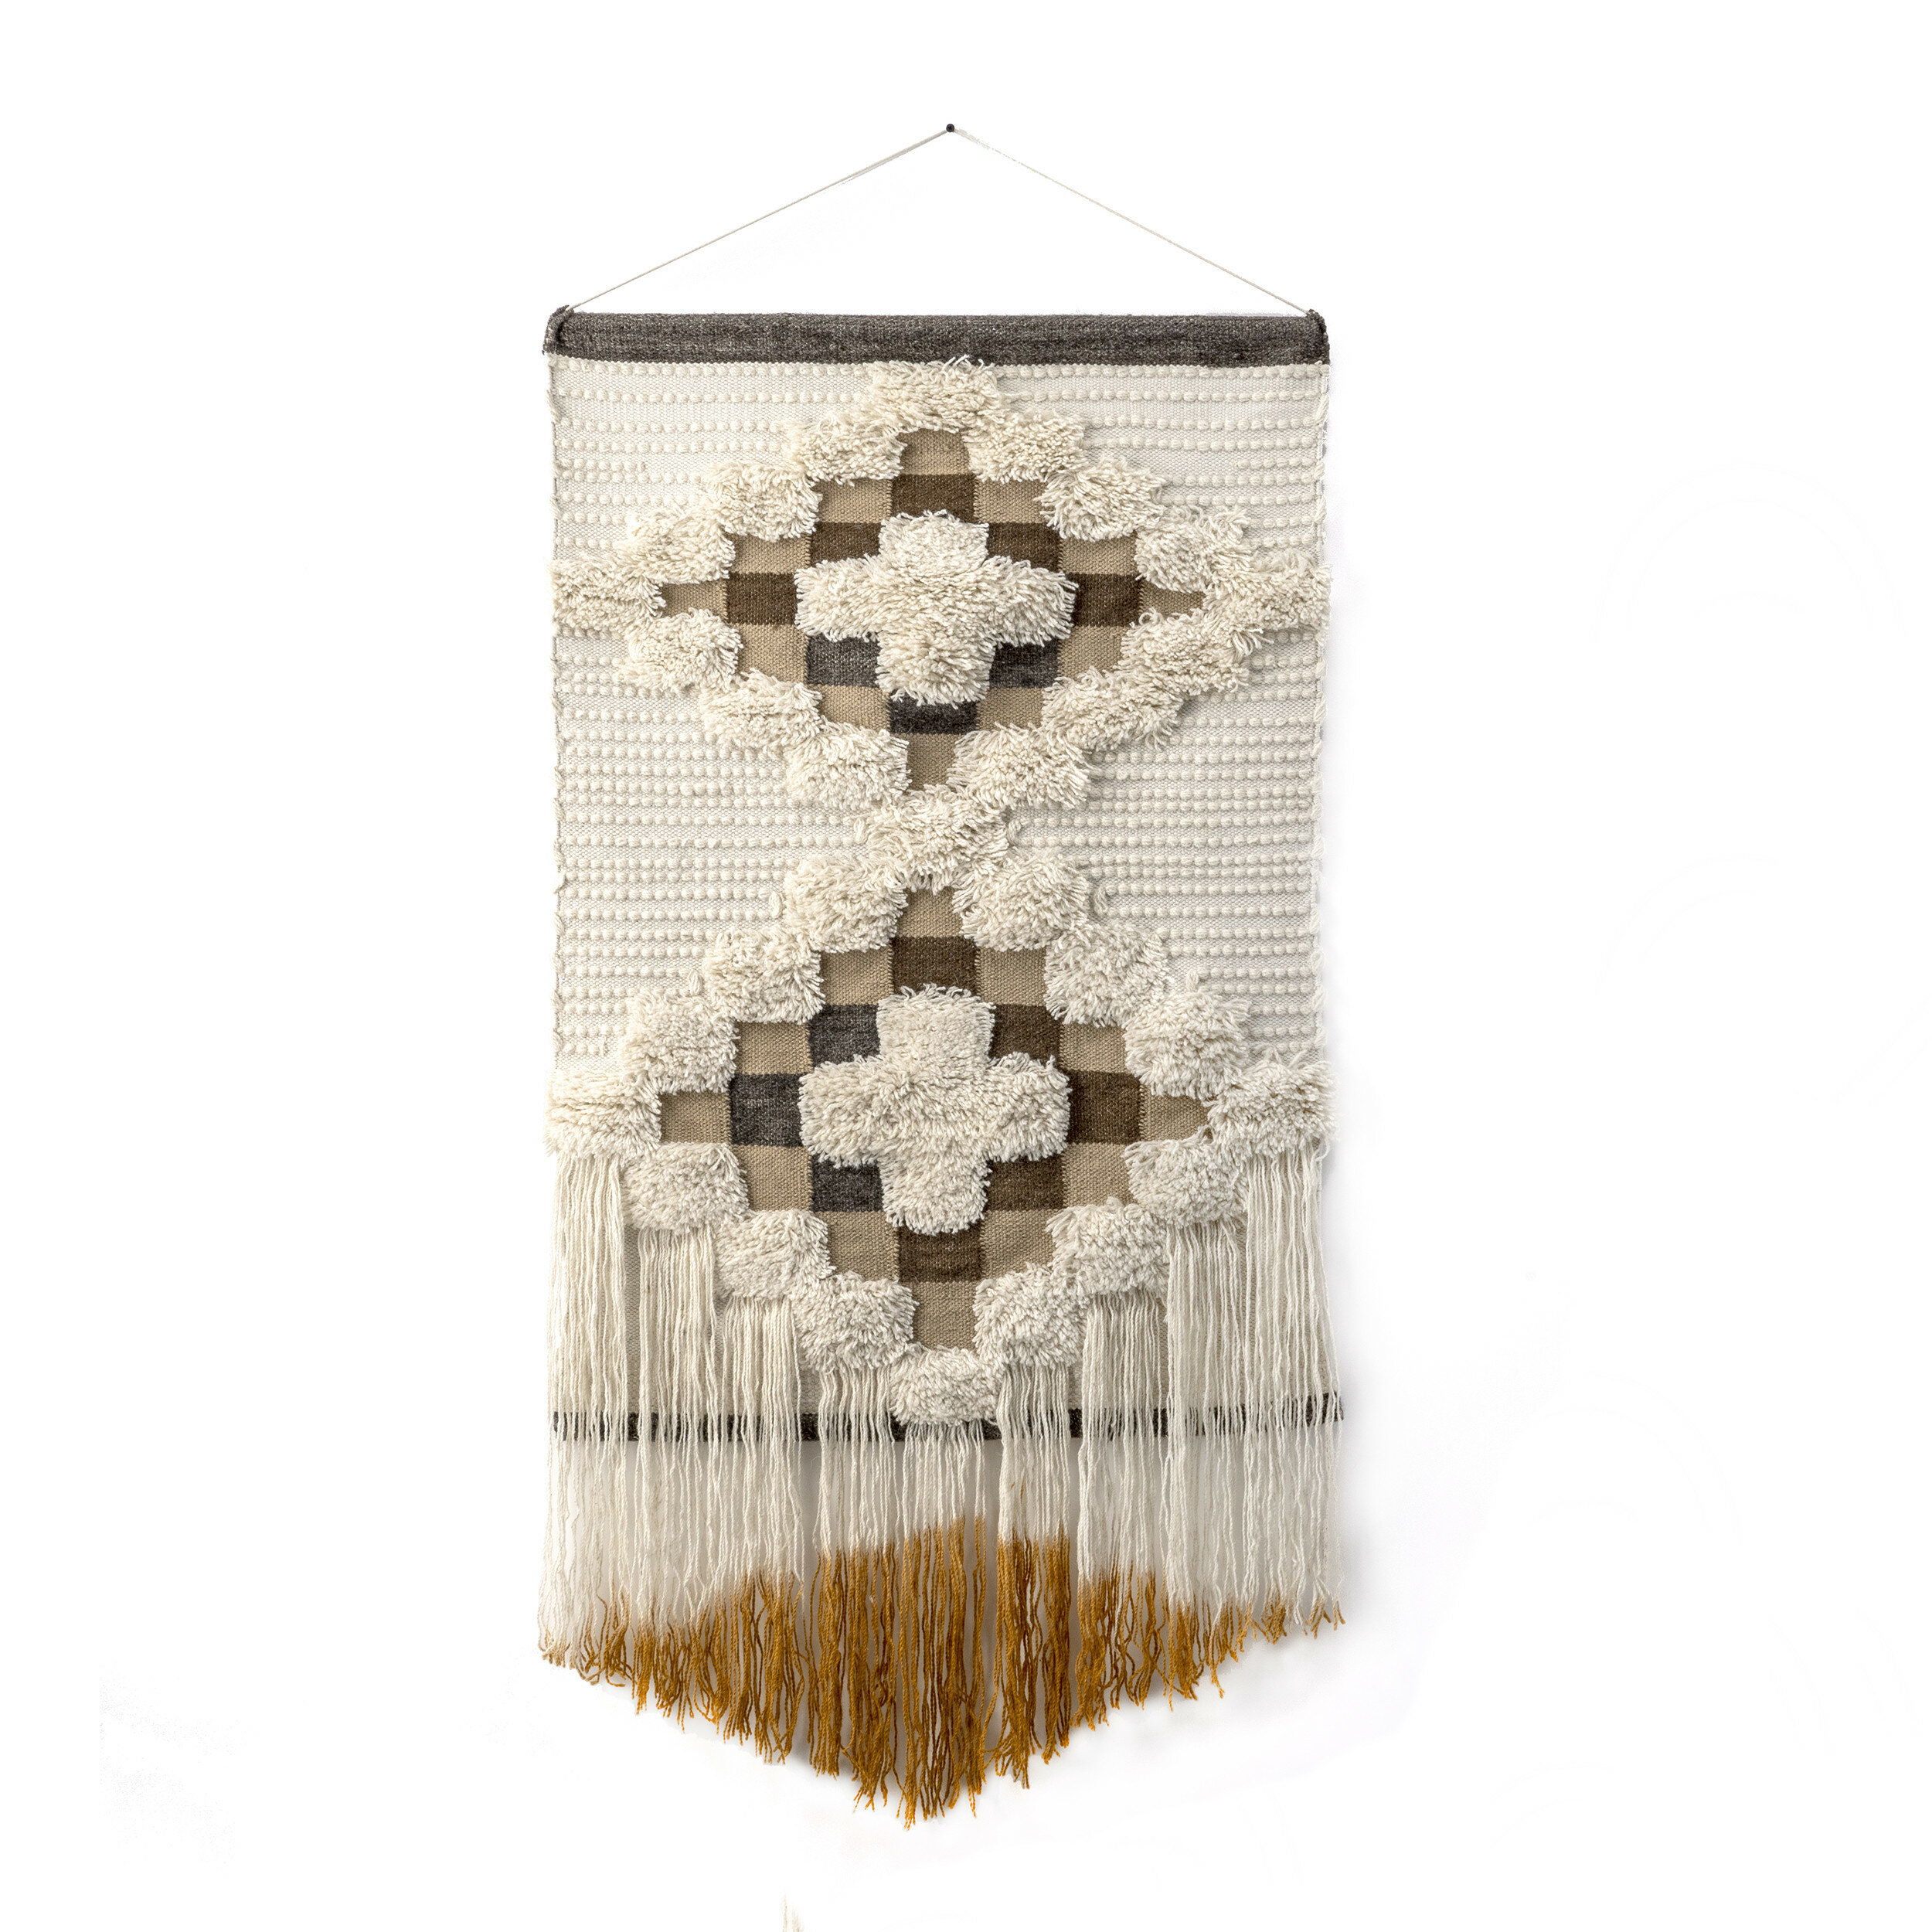 Cotton Wall Hanging With Rod Included Regarding Recent Blended Fabric Saber Wall Hangings With Rod (View 3 of 20)